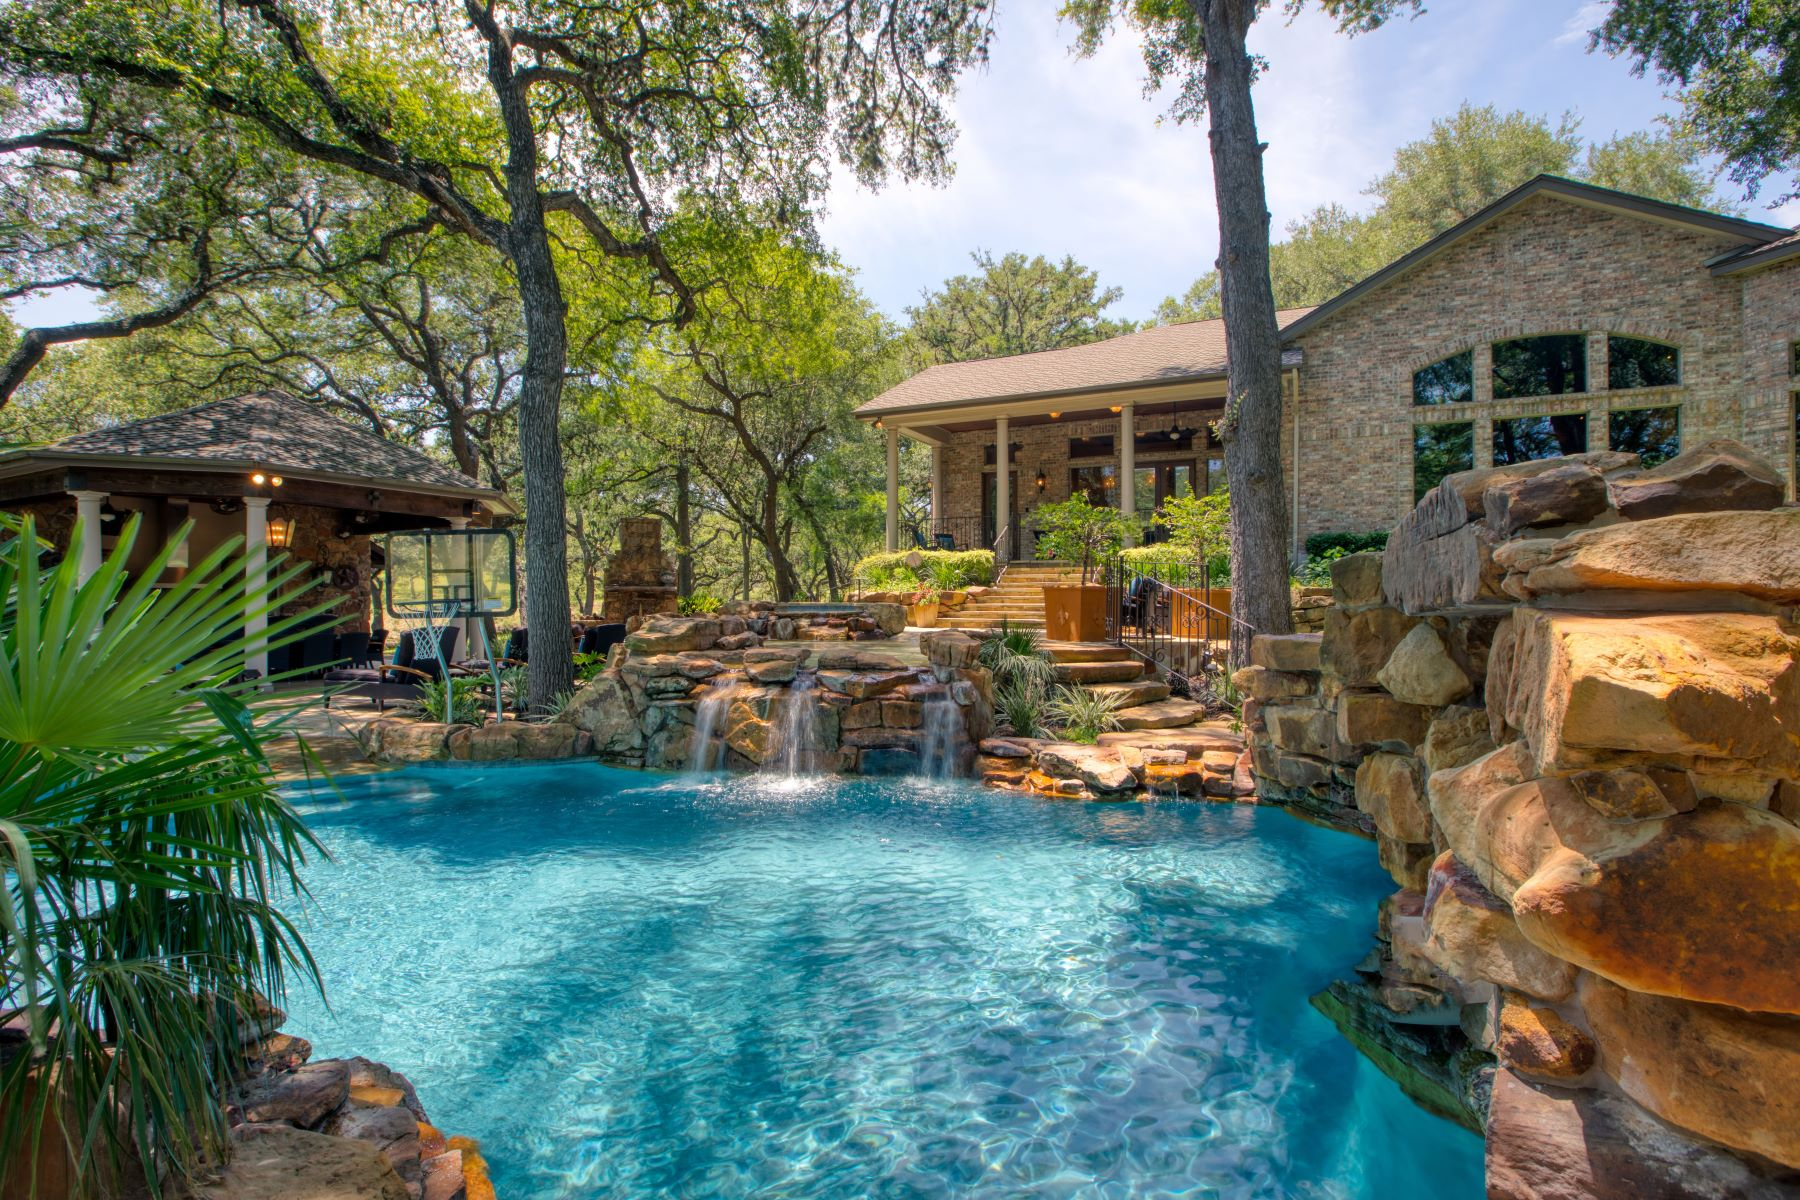 Single Family Homes for Sale at Sprawling 103+ Acre Estate Close to City 21881 Cielo Vista Drive San Antonio, Texas 78255 United States